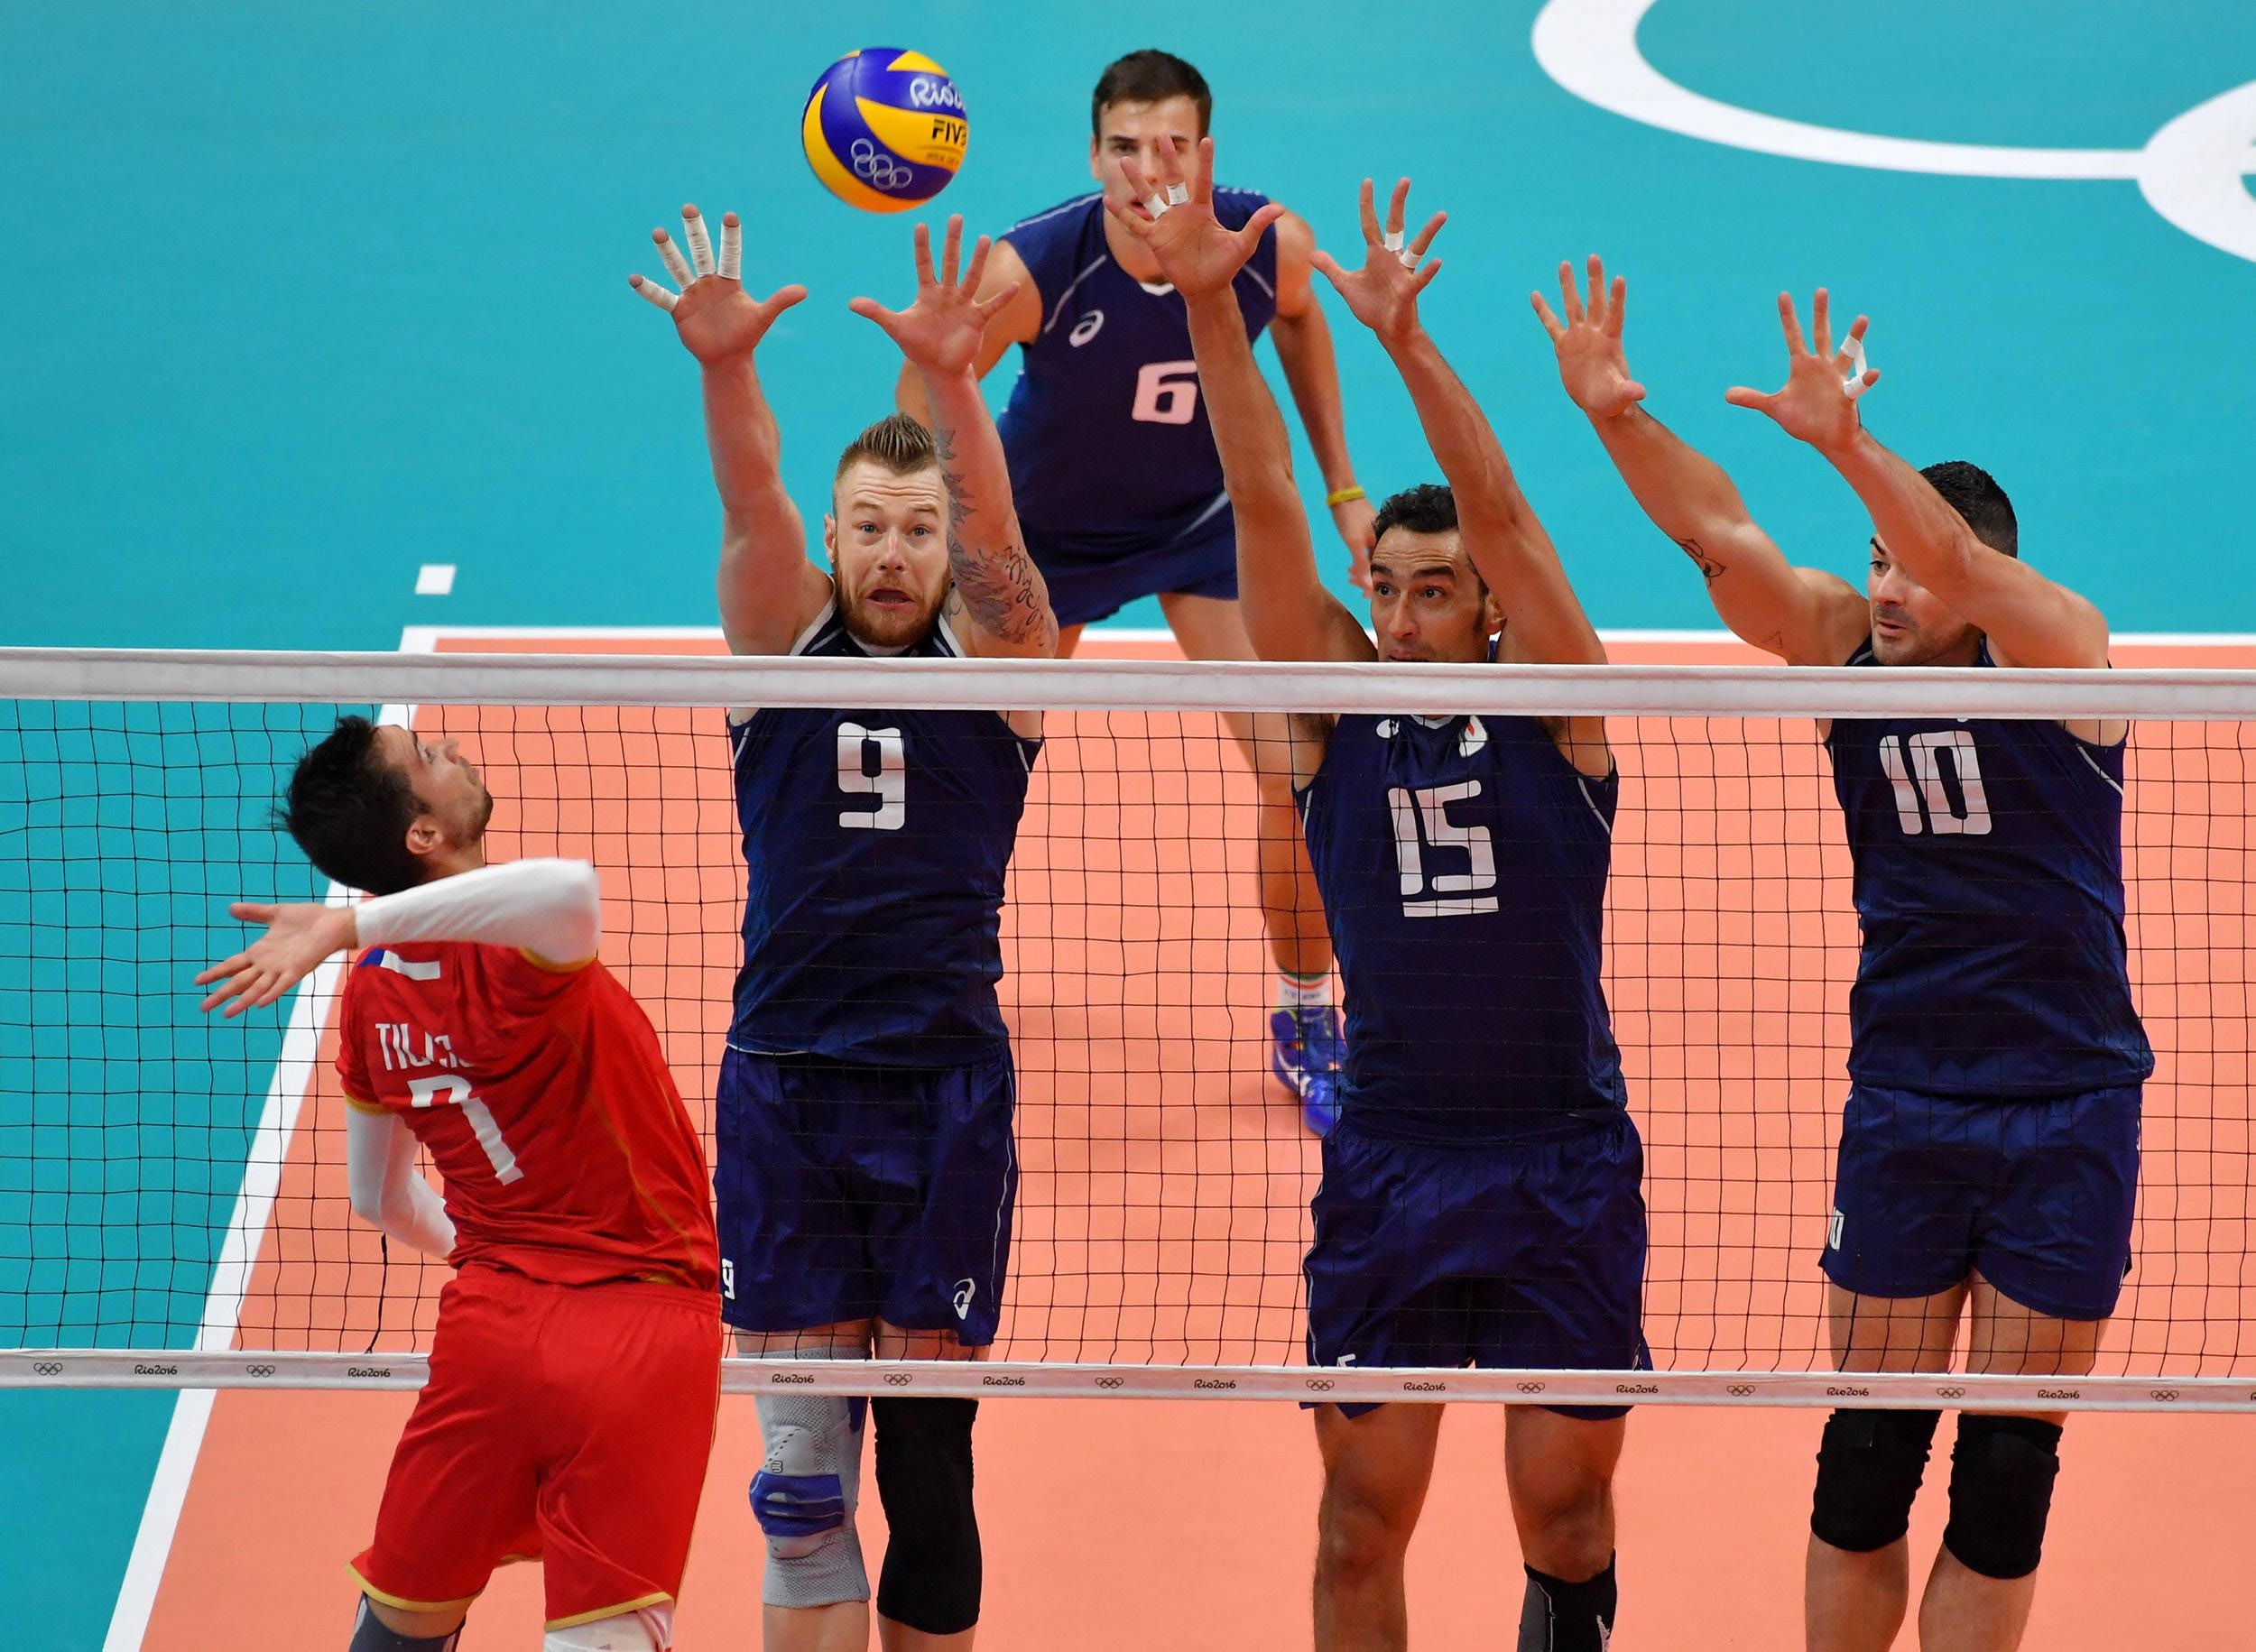 Kevin Tillie Spikes Against The Italian Triple Block Monster Block In 2020 Volleyball Image Kevin